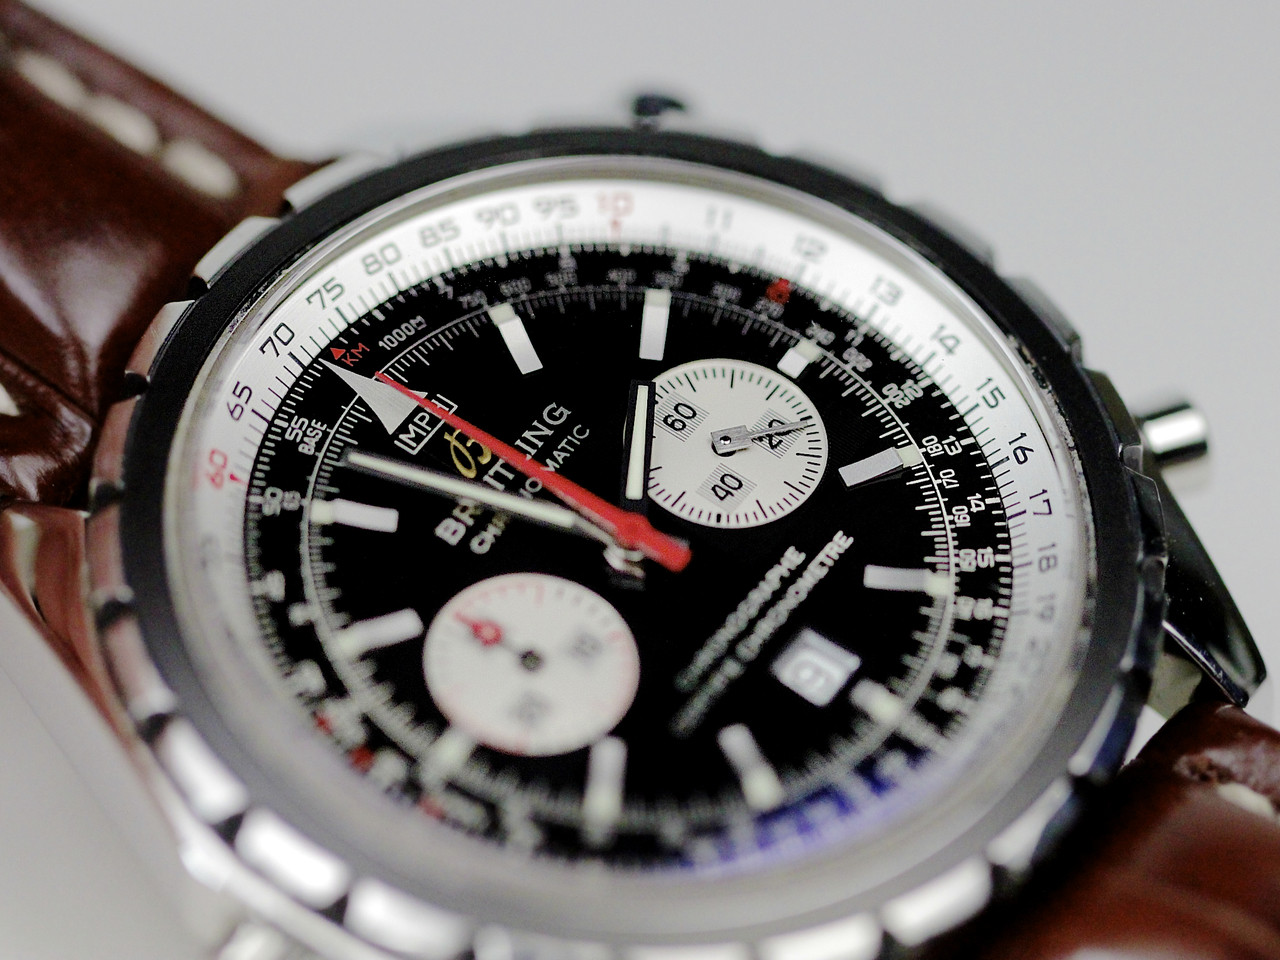 4f4d04df9 ... Breitling Watch - Chrono-Matic Chronograph A41360 with Black · Black  Dial with two silver sub-dials, red chronograph hand - For sale Pre ...